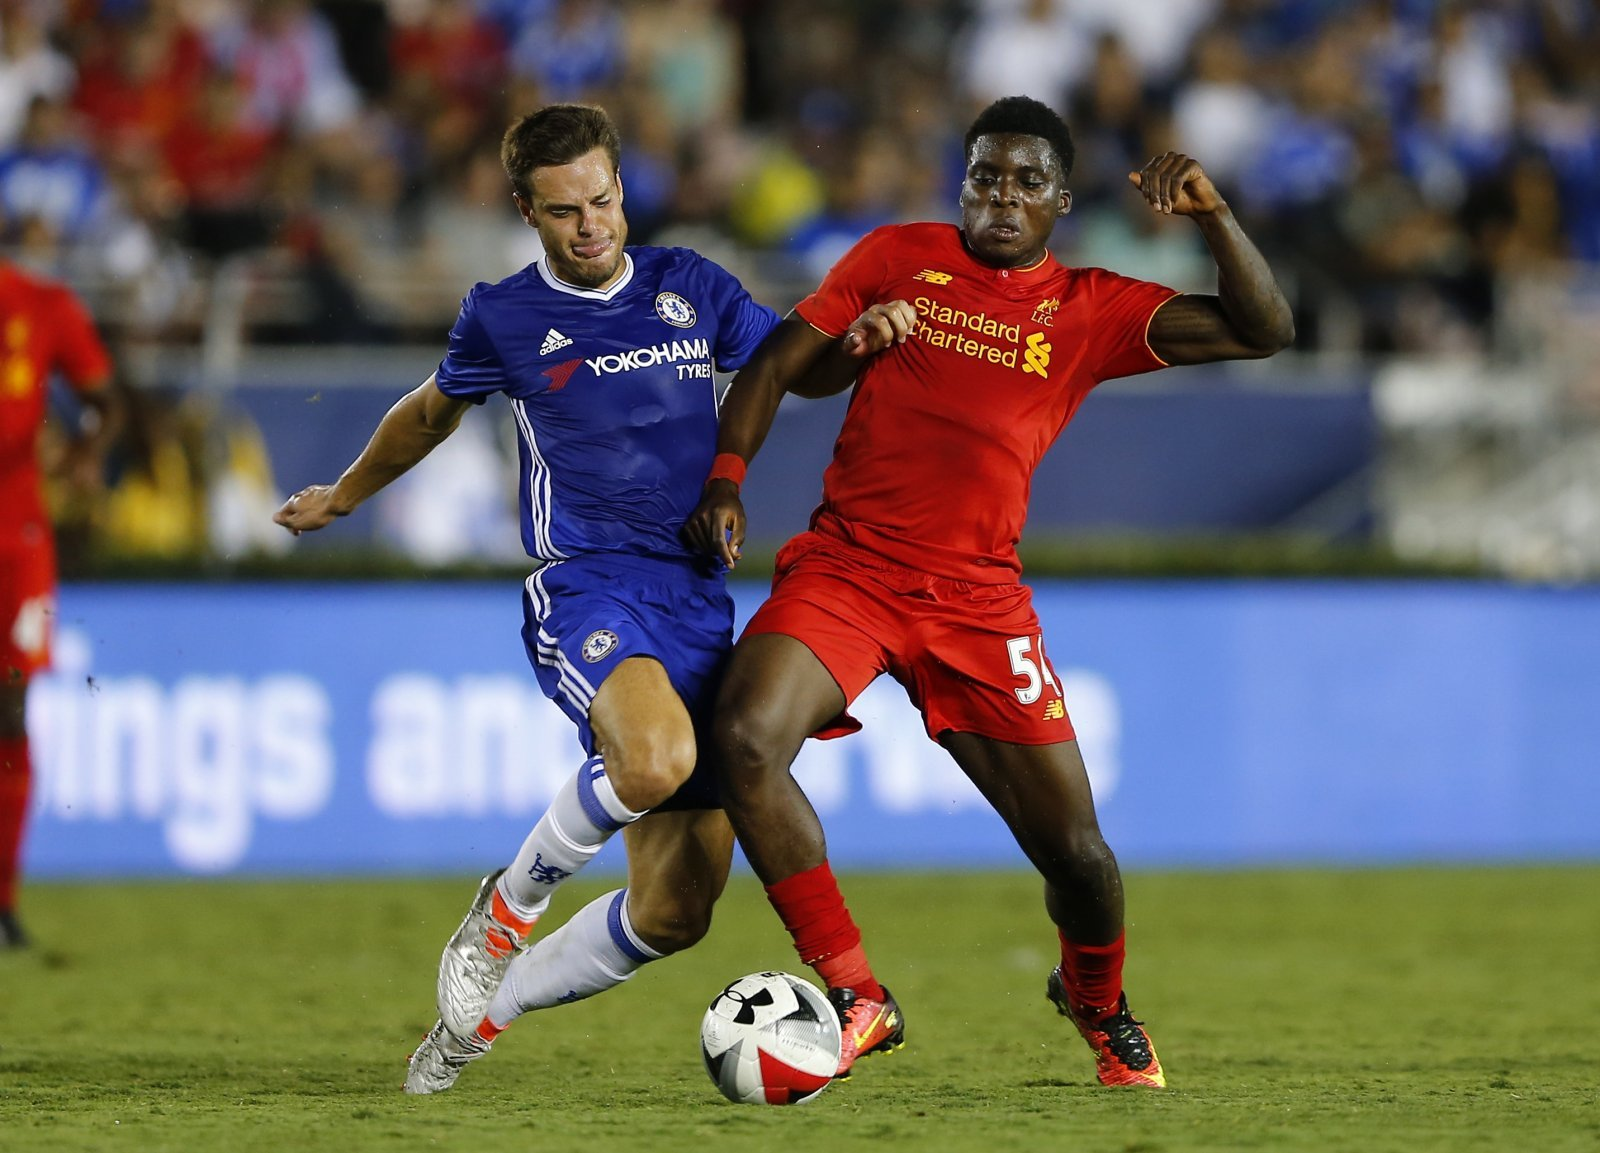 Sheyi Ojo's new contract and loan deal have pleased Liverpool fans